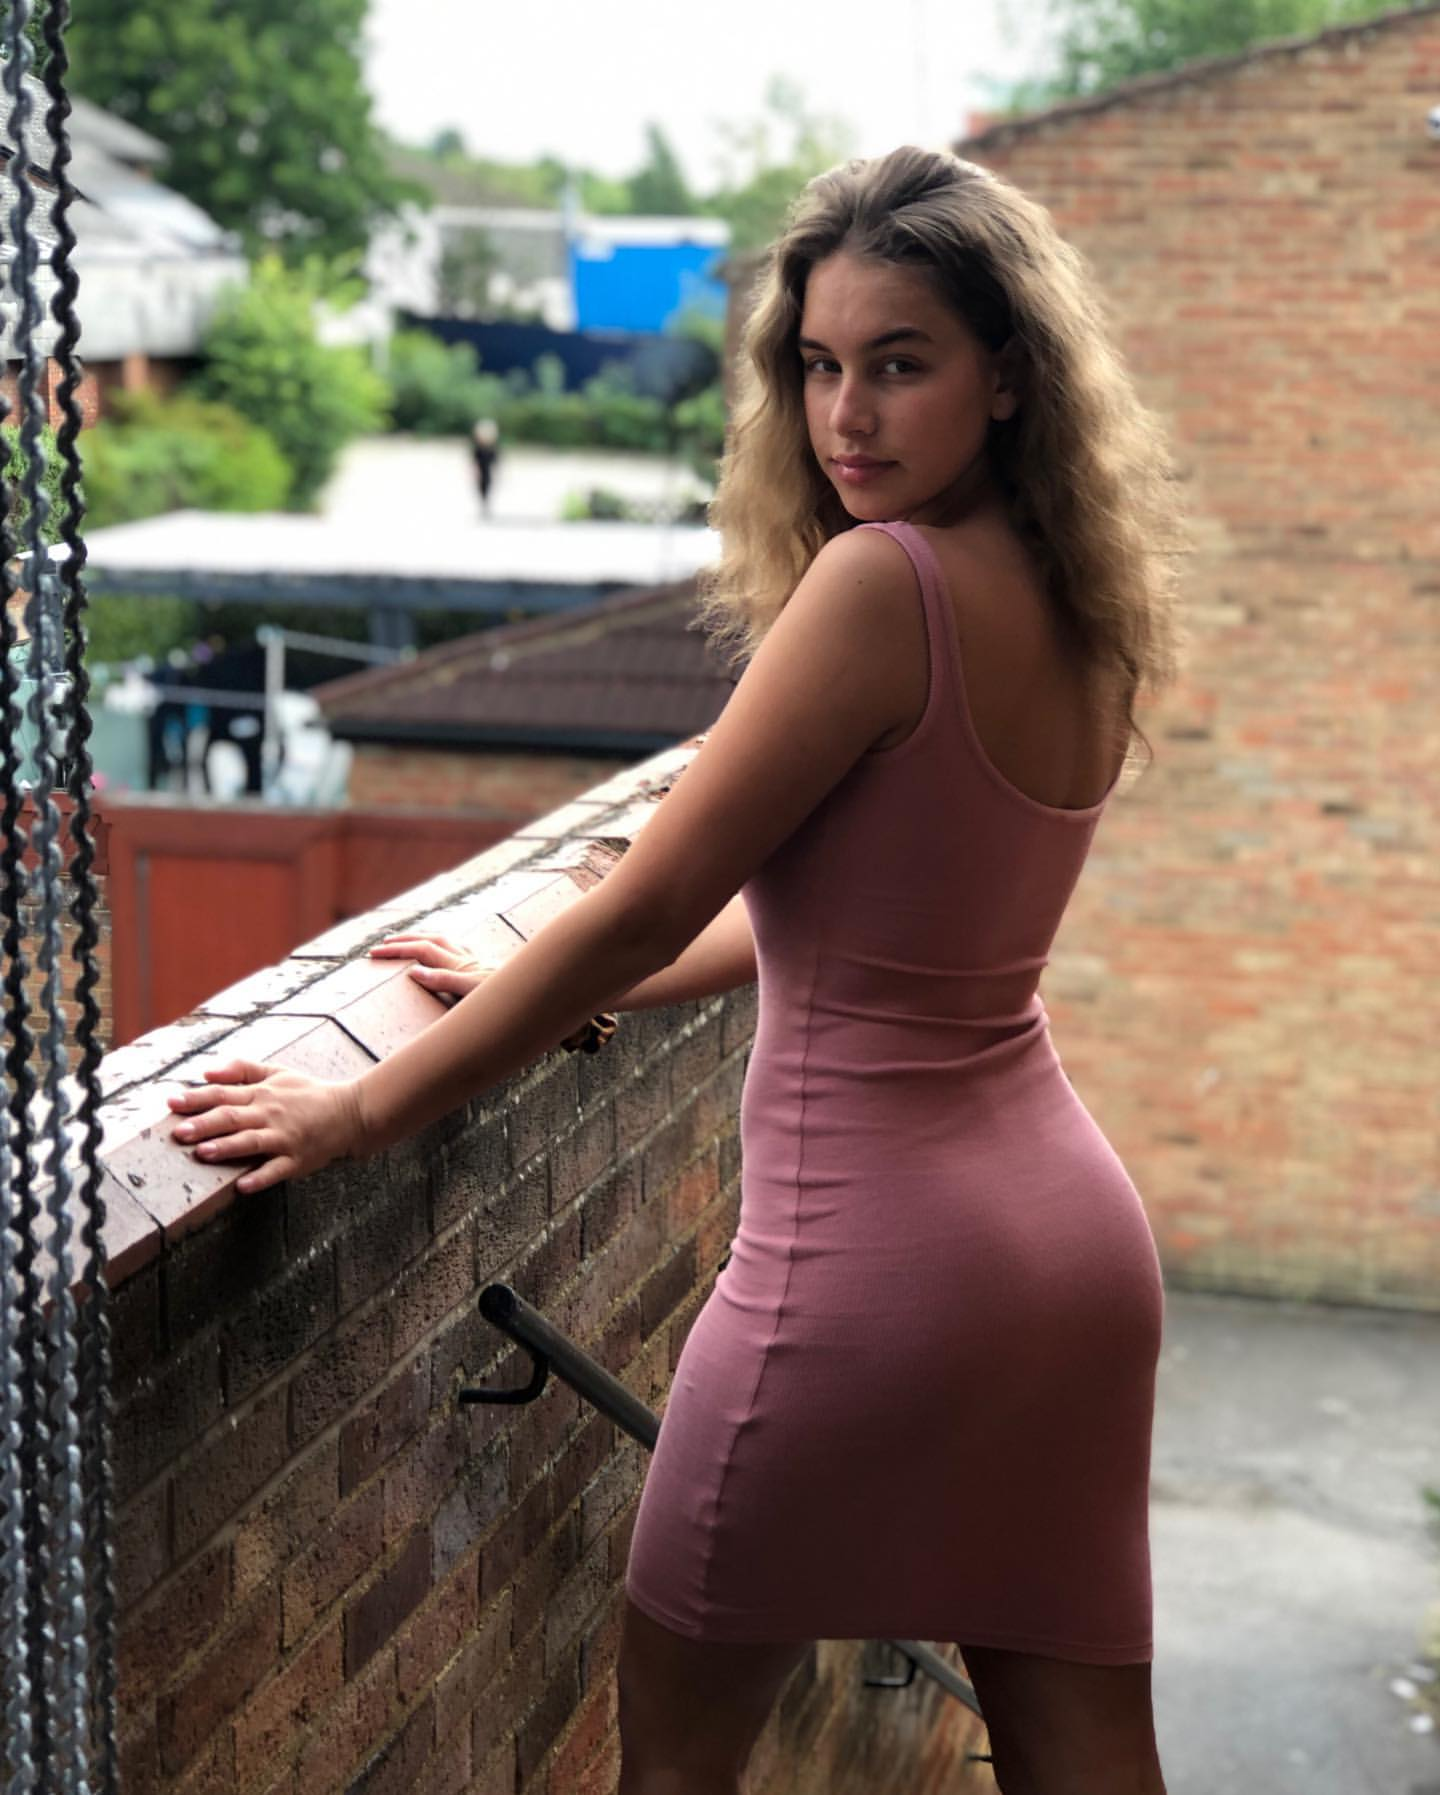 Kyia Peters, Kyia1, Onlyfans 0001